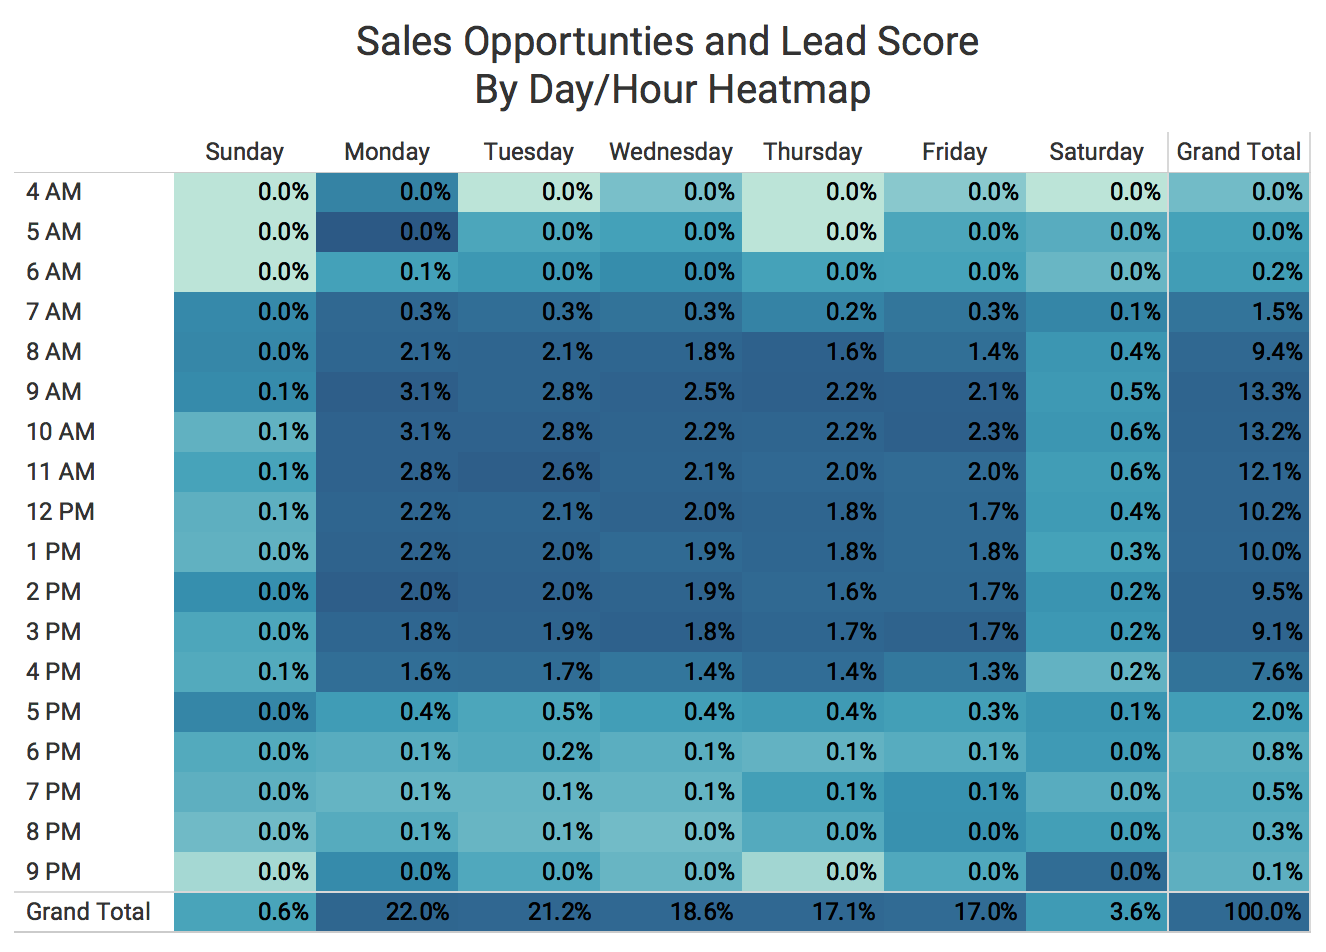 AI Call Reports sales opportunities lead score heatmap